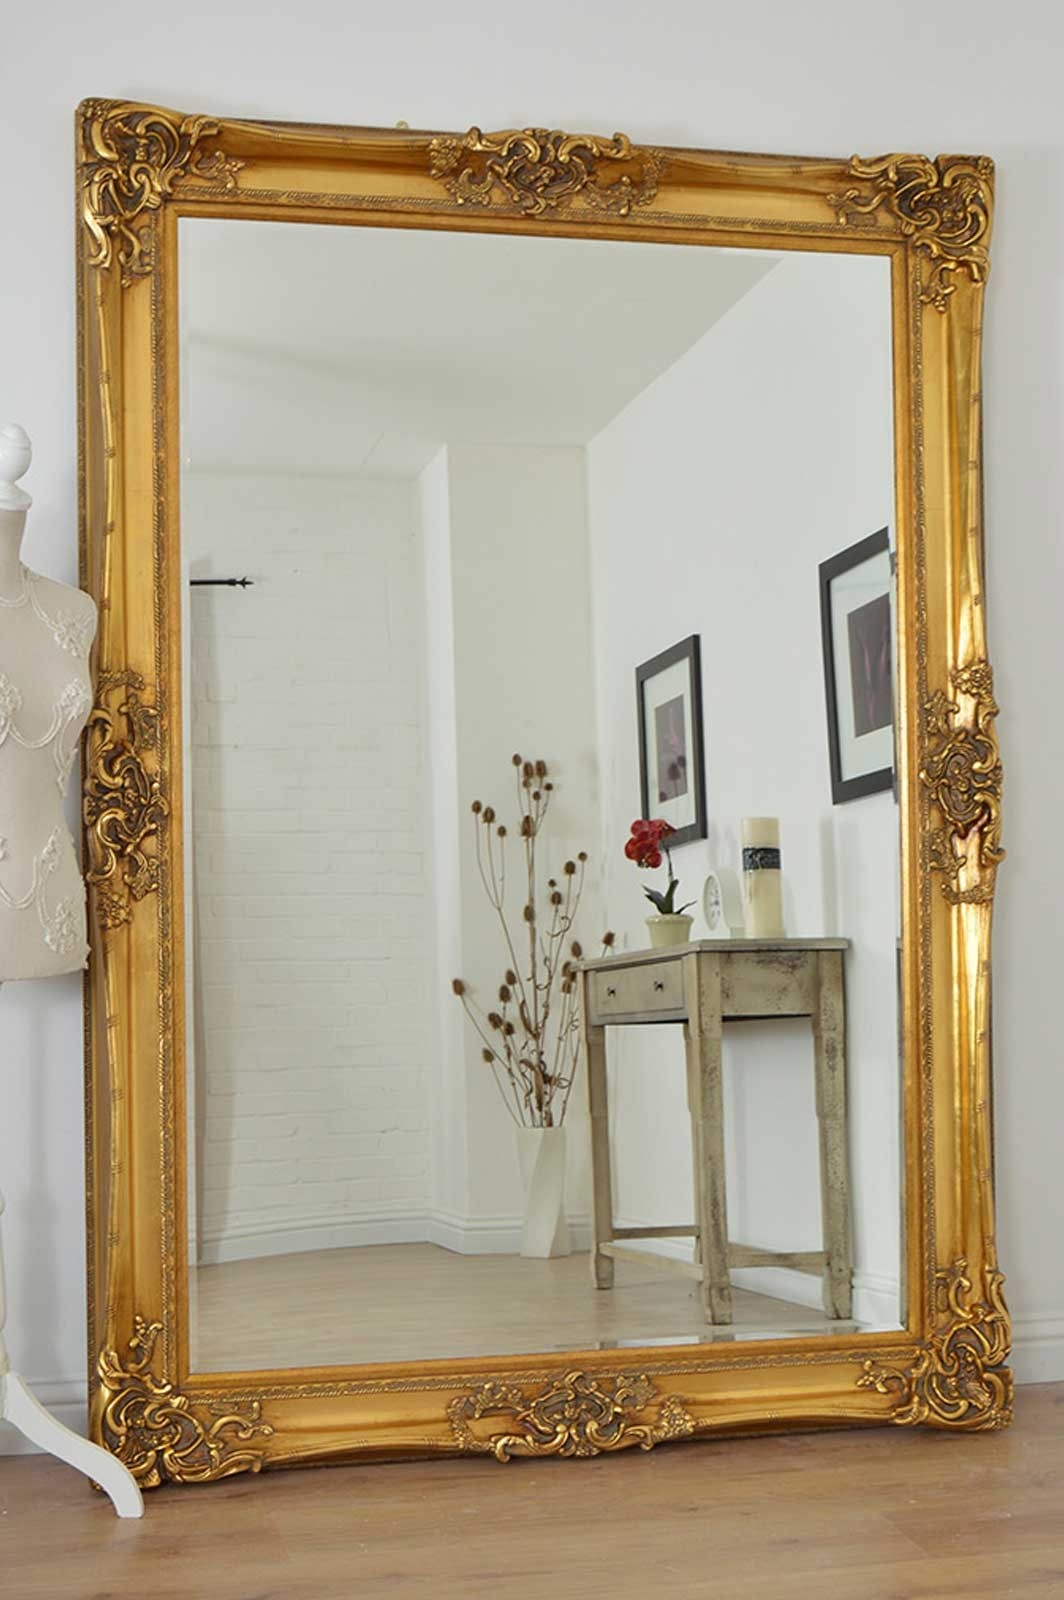 Mirroroutlet Shop For Large Mirrors Wall Mirrors Free Delivery Intended For Rococo Mirrors Cheap (View 10 of 15)